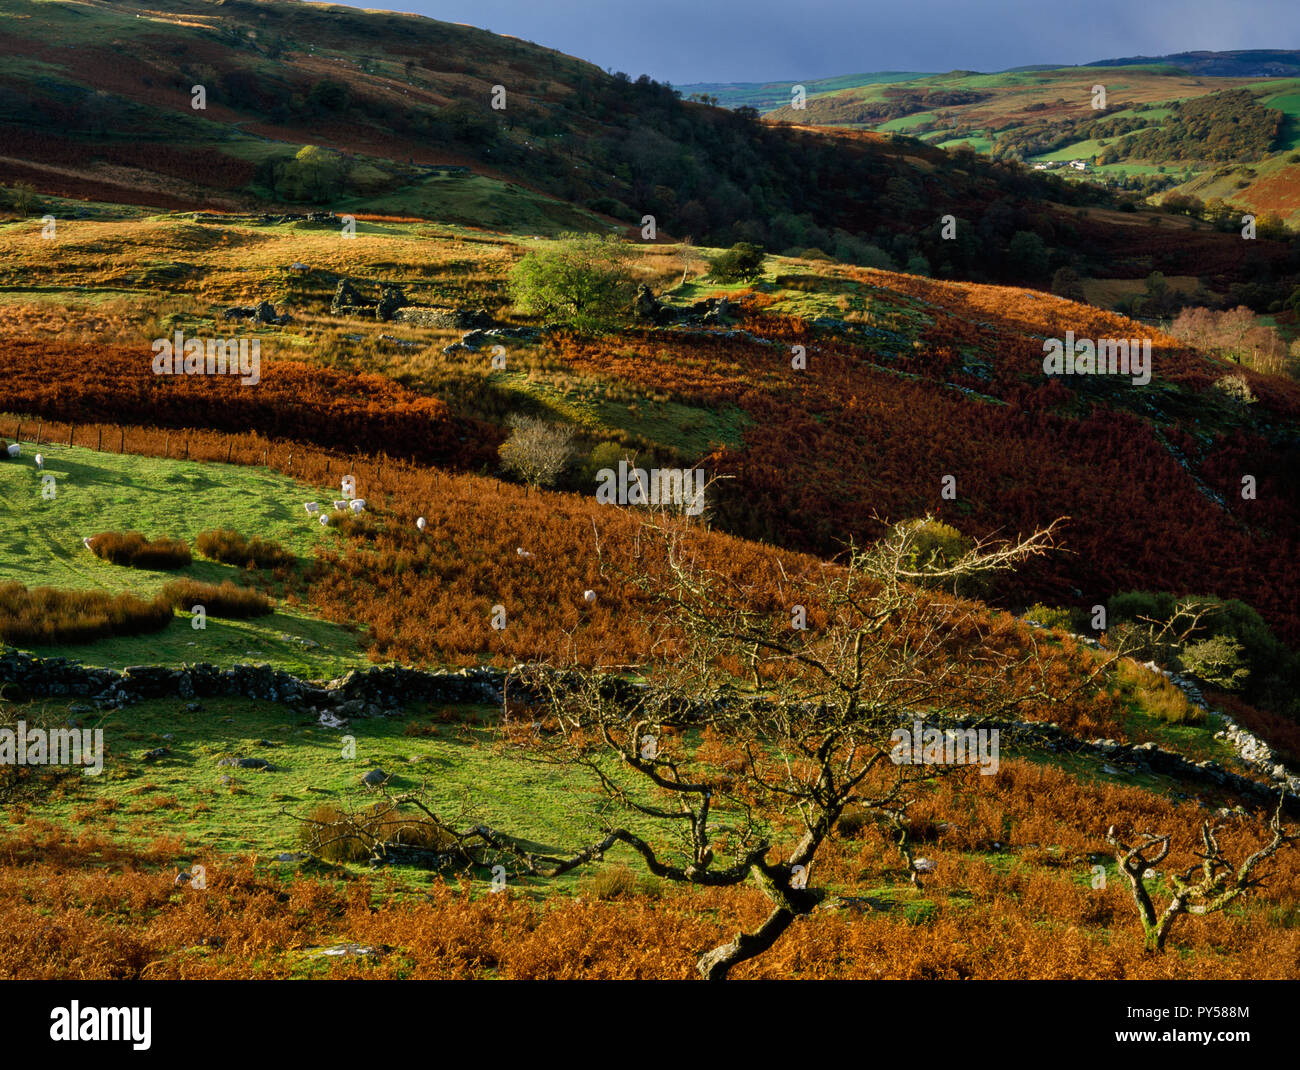 View WNW of ruined farmsteads in the Mwyro Valley, Ceredigion, Wales, UK, a remote but once populated & well organized upland landscape now deserted. - Stock Image